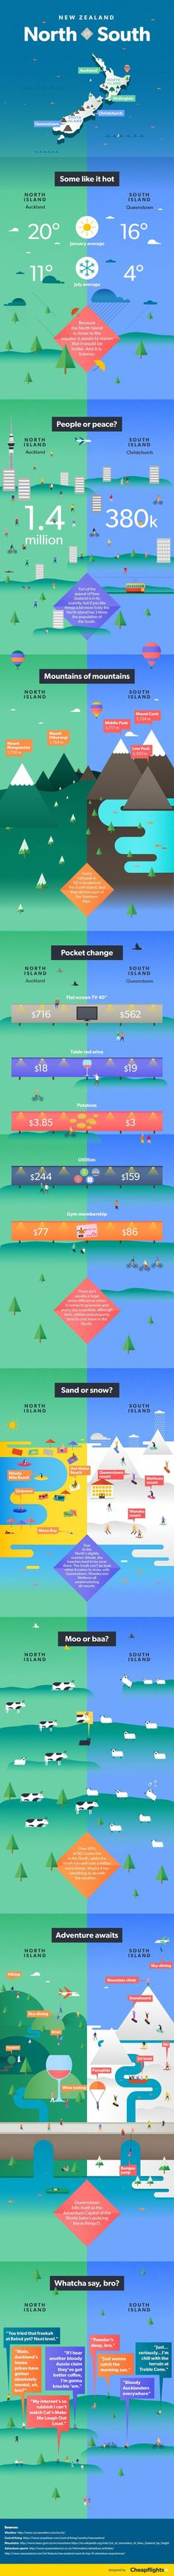 New Zealand: South Island Vs. North Island? #Infographic #Travel